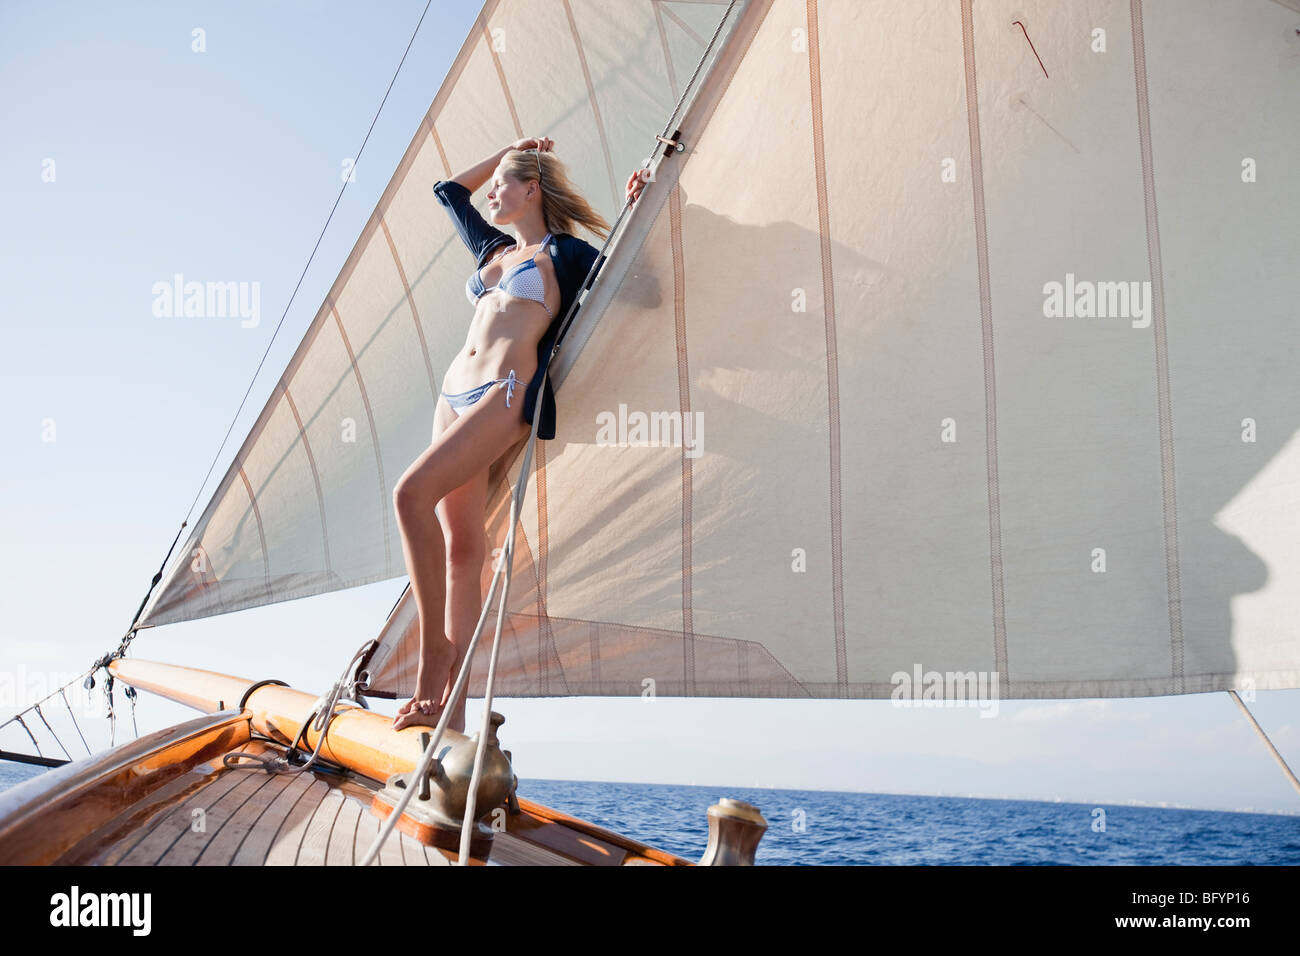 woman leaning at the sails of a boat - Stock Image